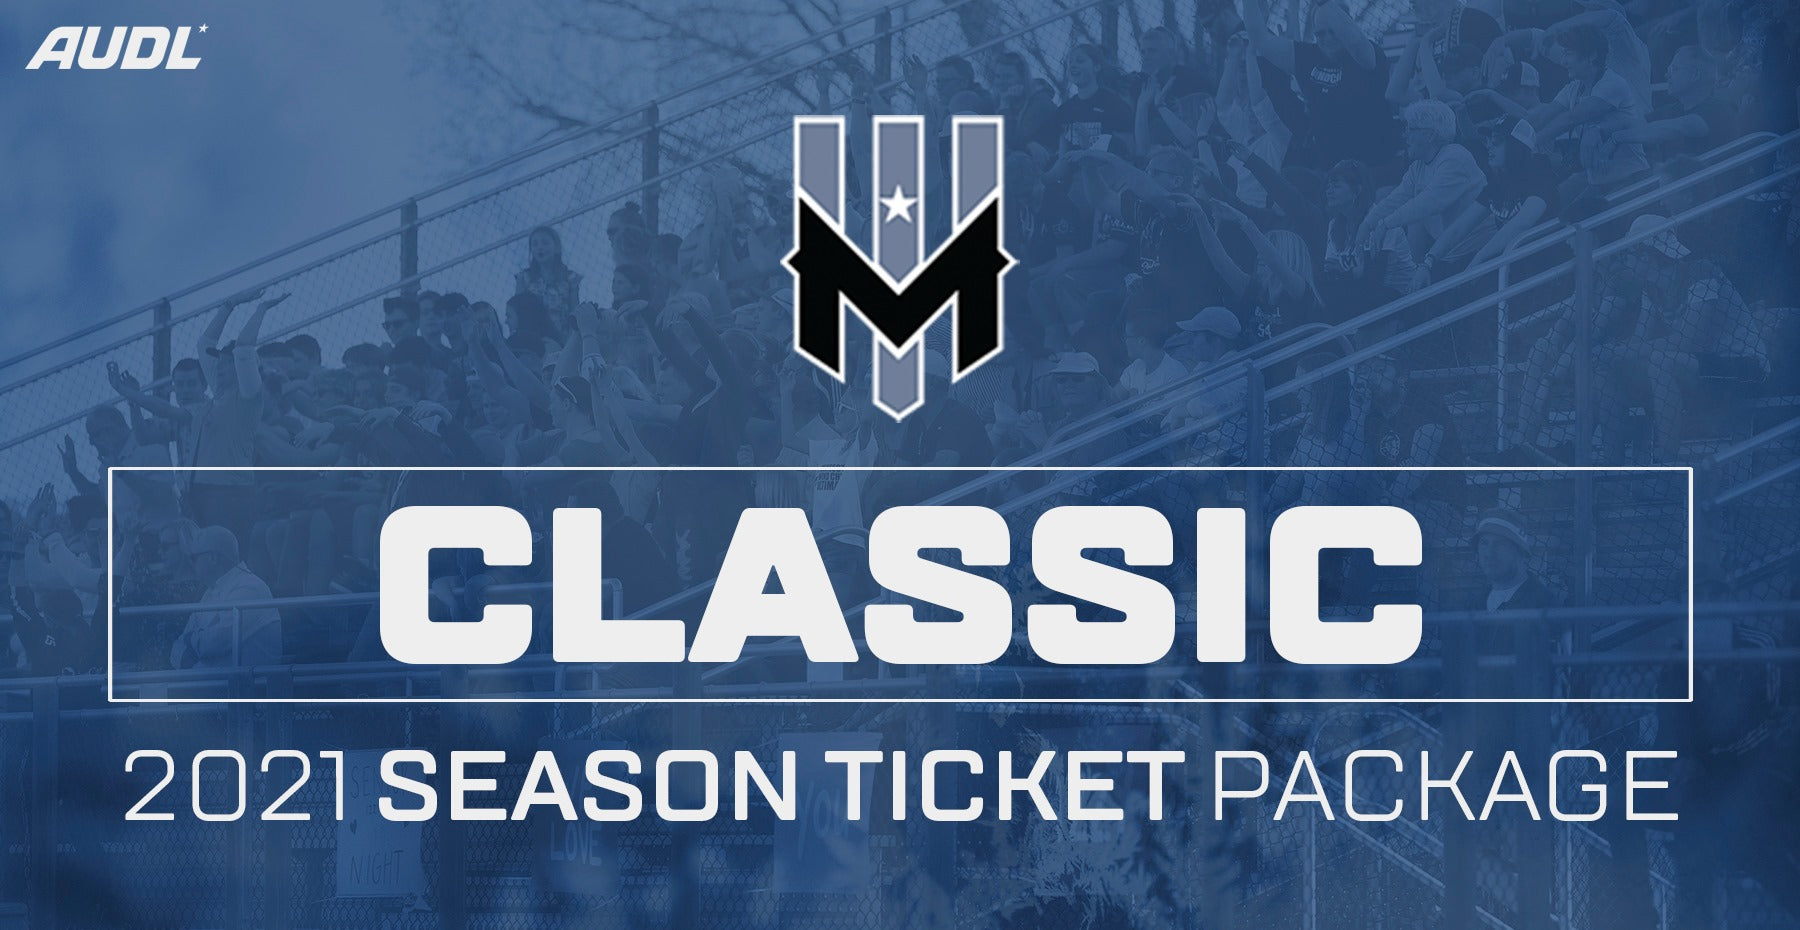 Wind Chill 2021 Season Ticket Package - Classic